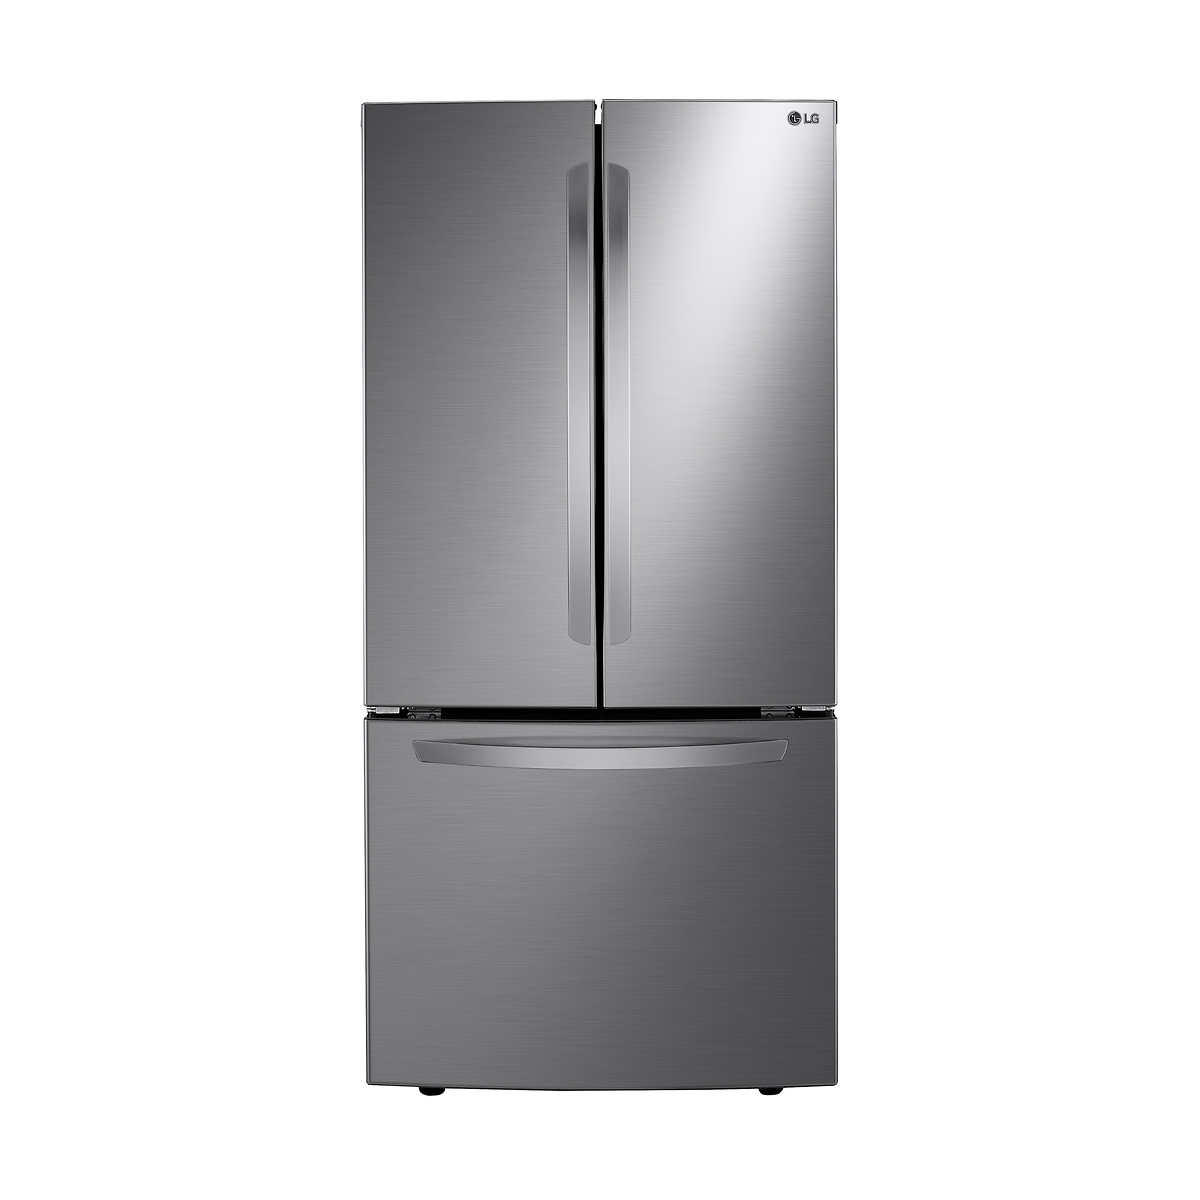 LG Fridge LRFNS2503V in Stainless Steel color showcased by Corbeil Electro Store